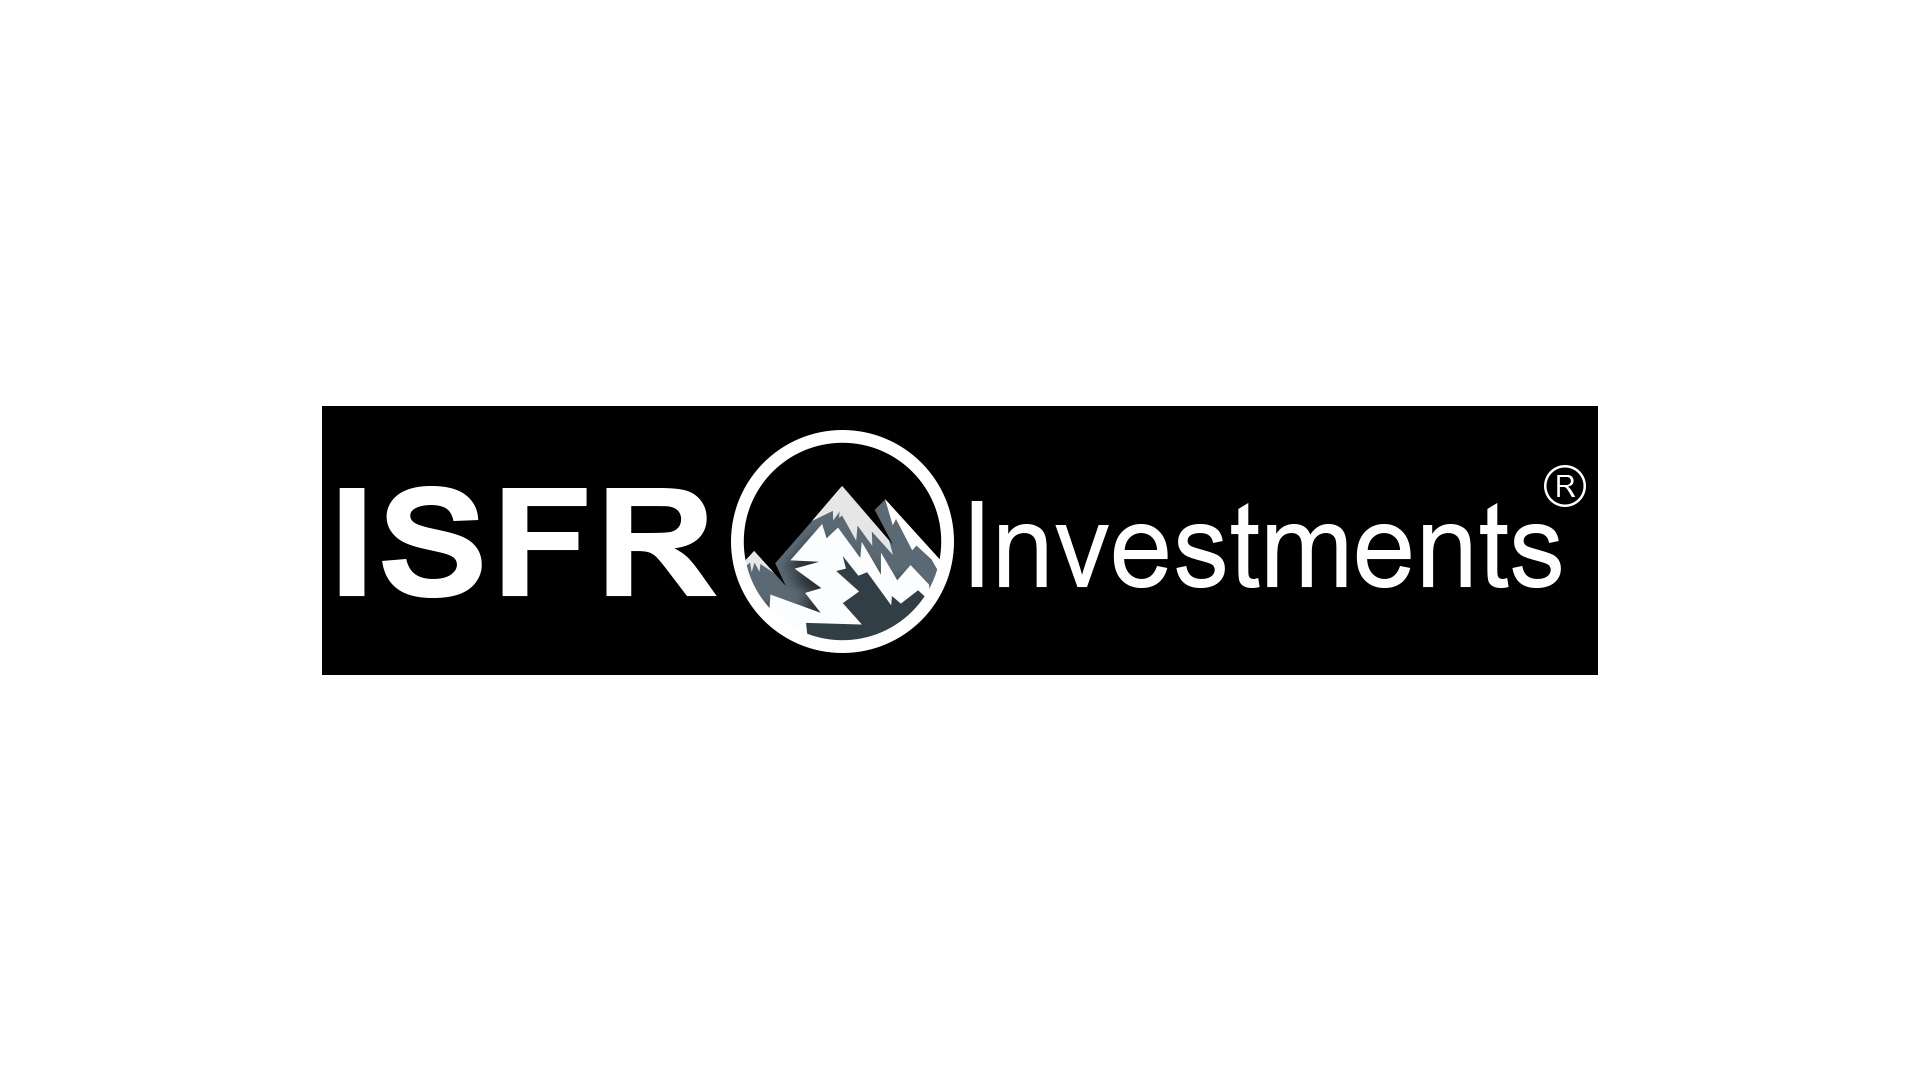 ISFR - Invest Smart For Retirement